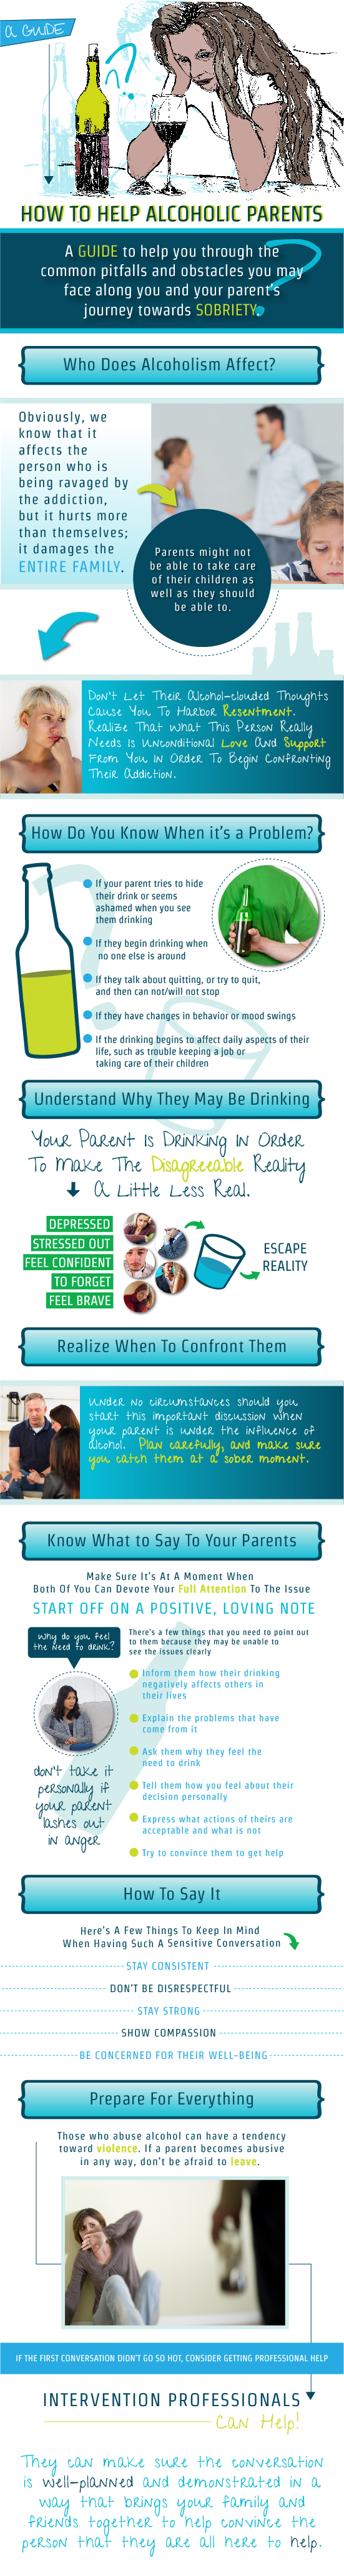 Infographic How To Help Alcoholic Parents